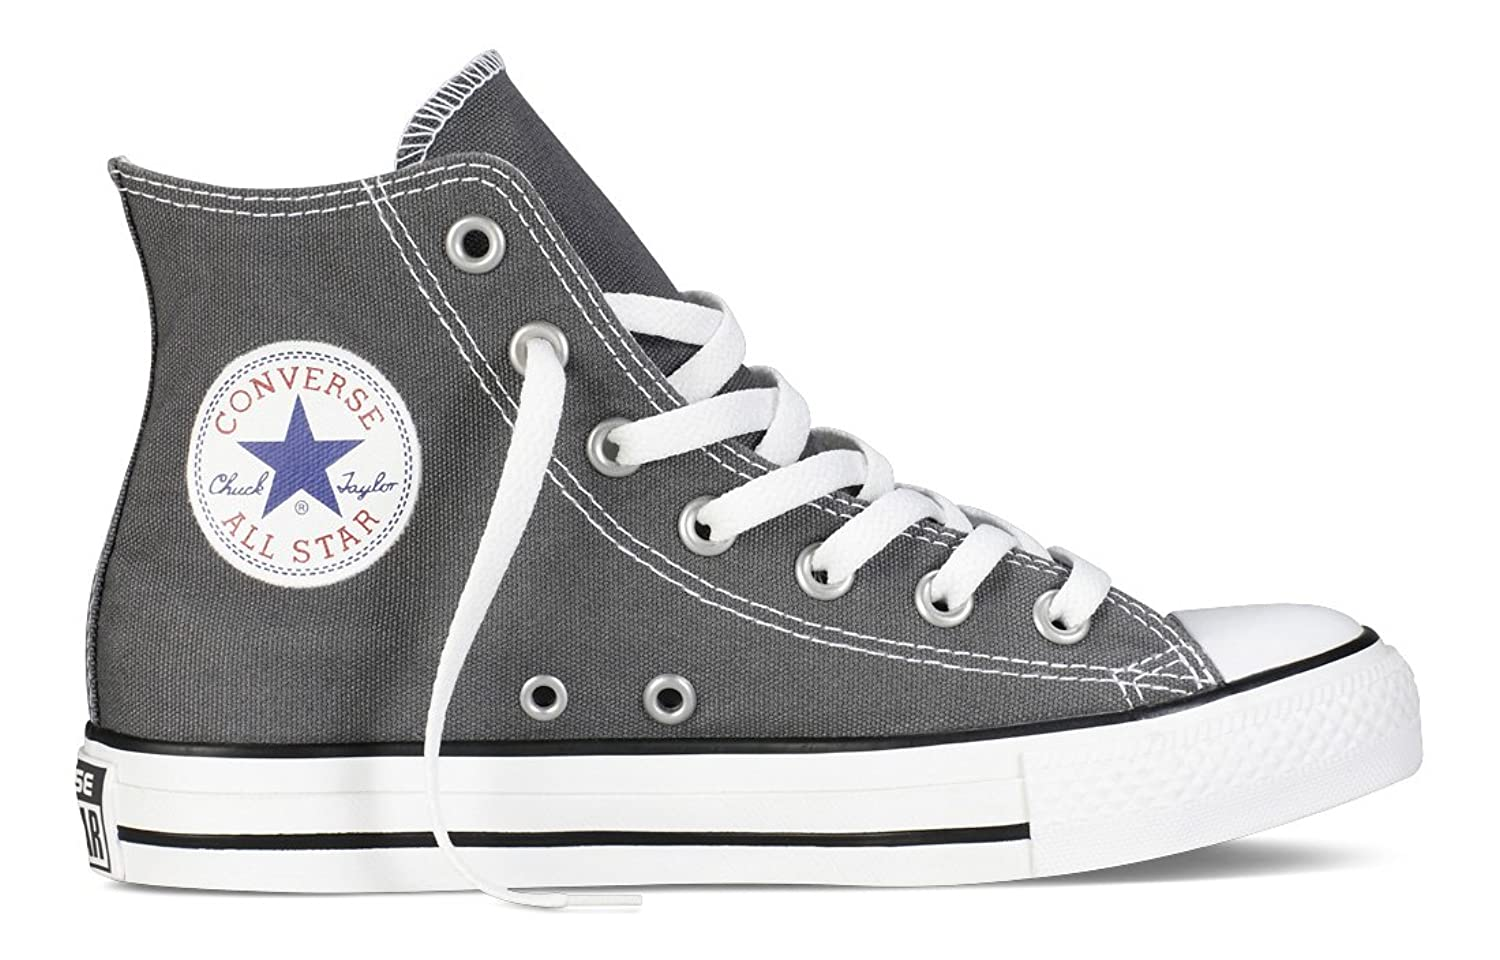 Converse Chuck Taylor All Star Core Hi Zapatillas de tela Unisex